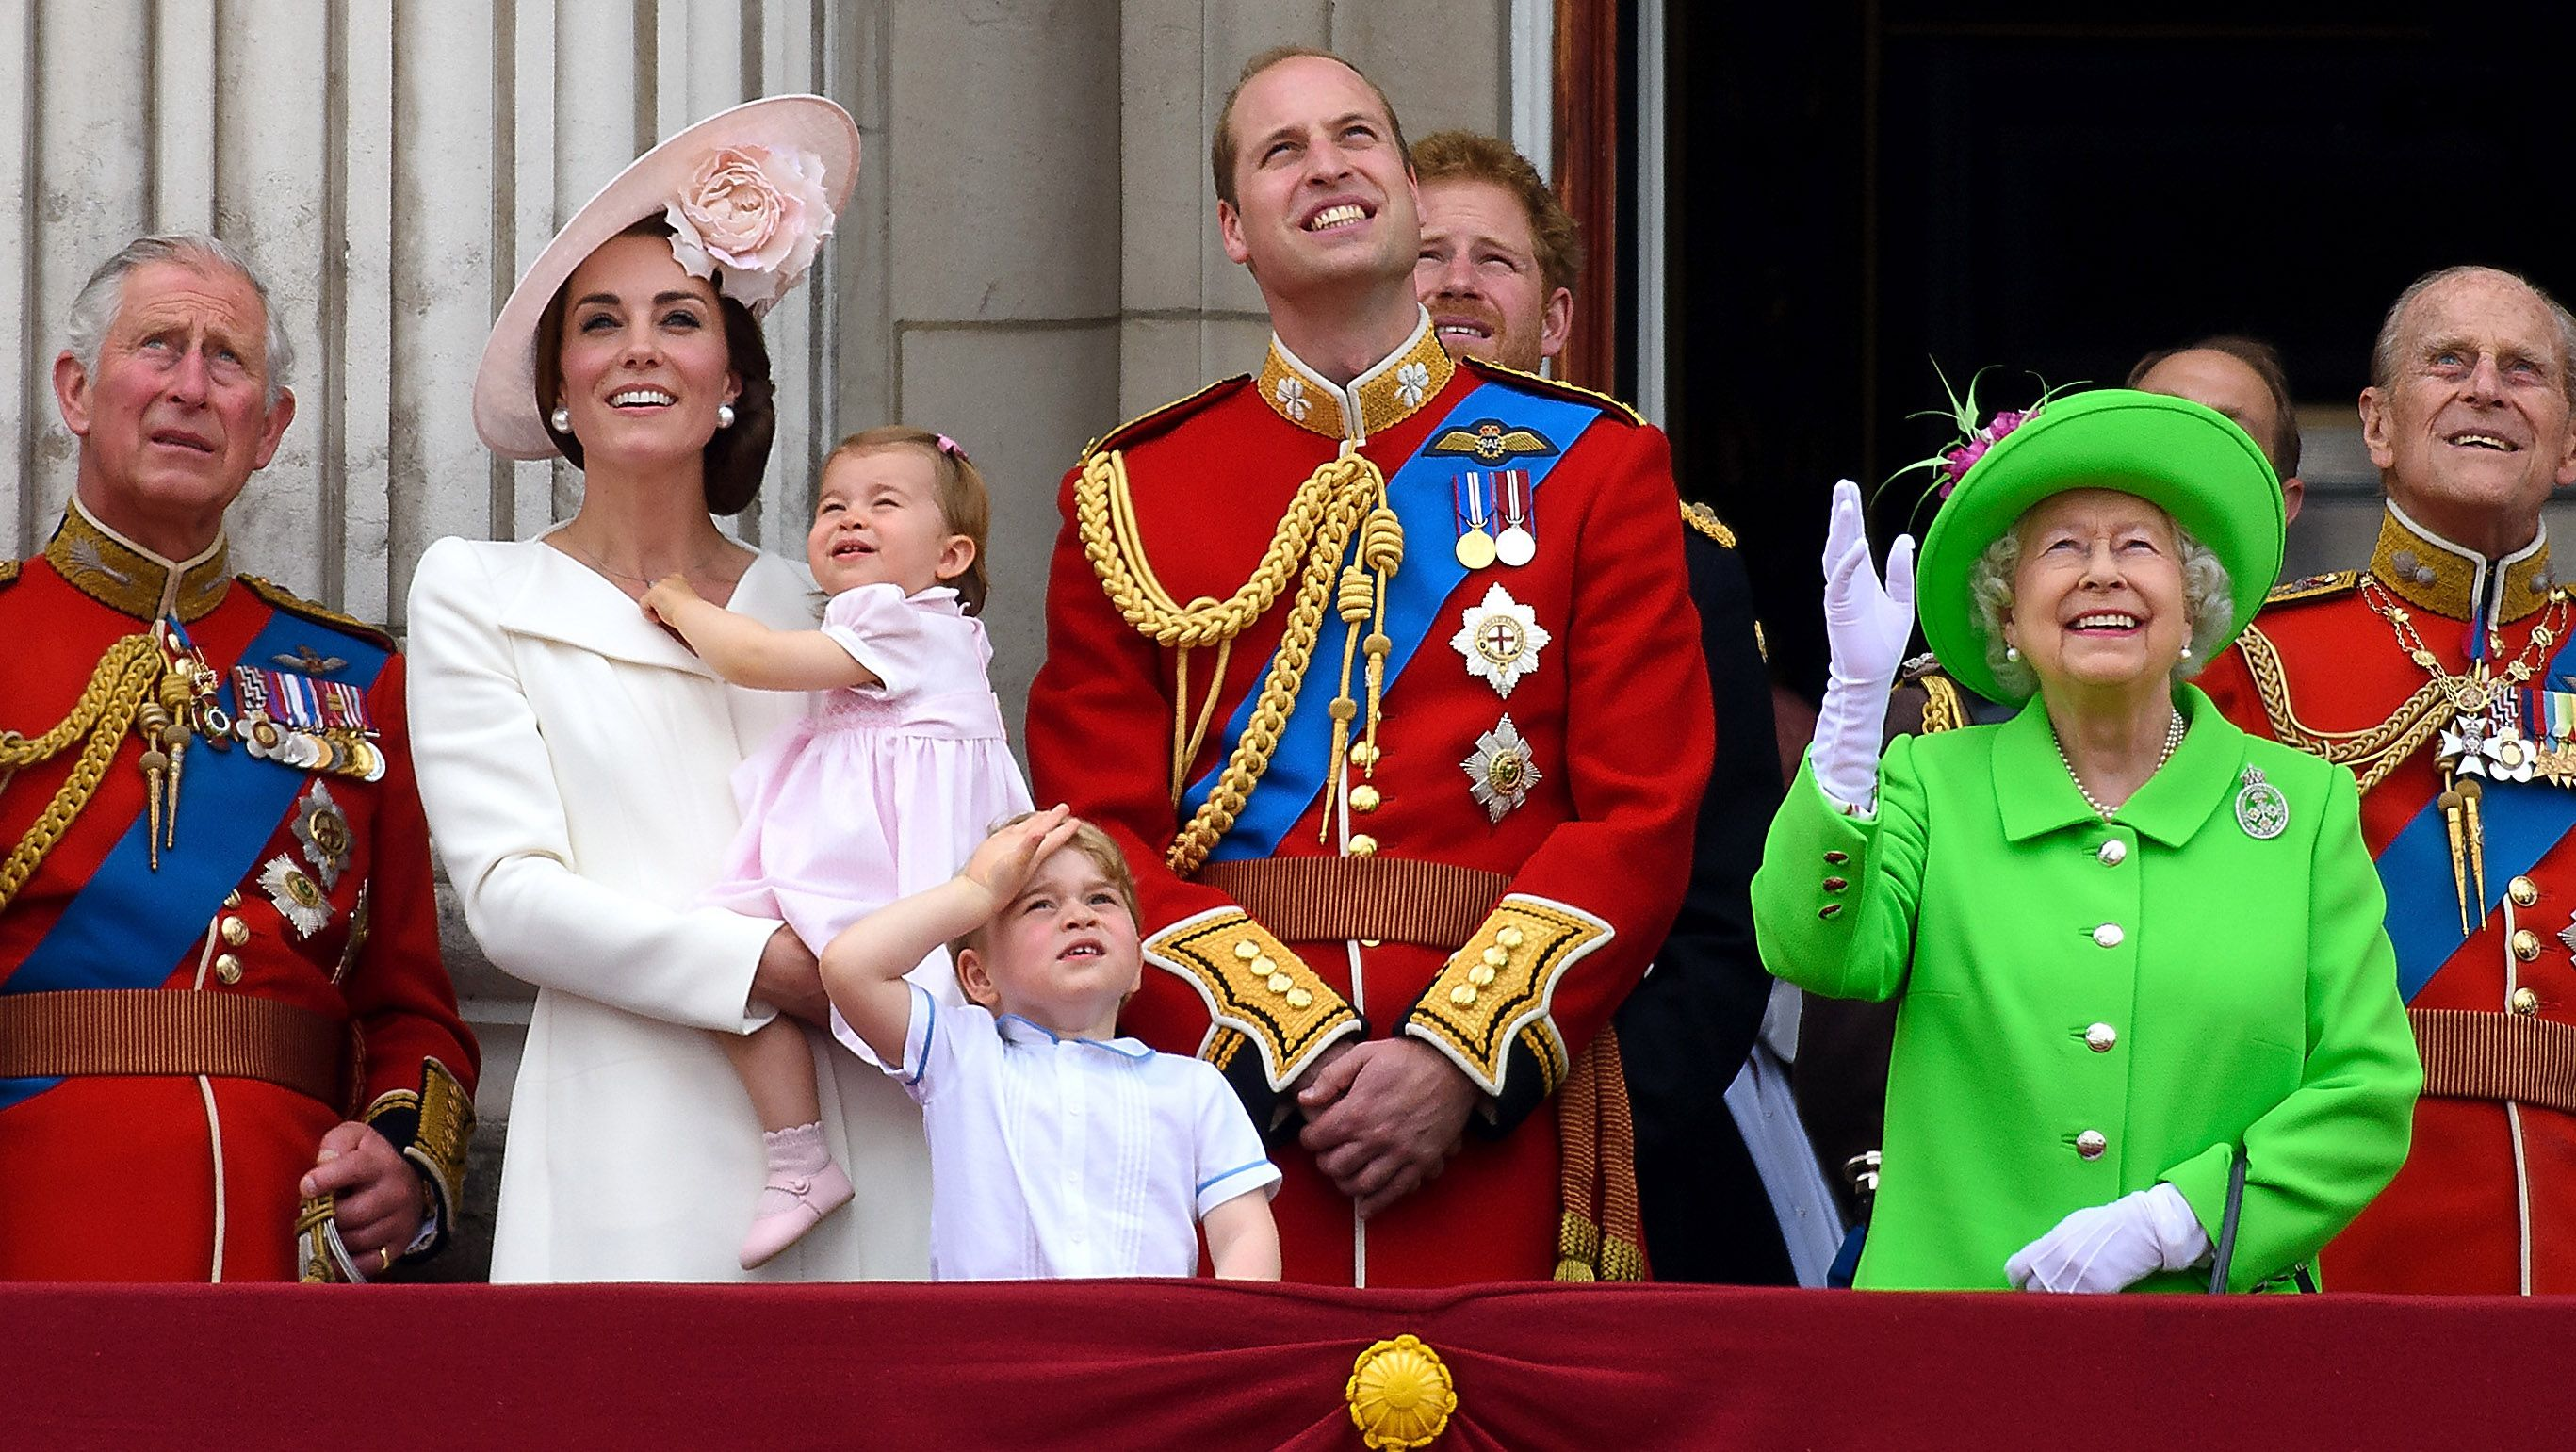 Fans Drag Kate Middleton And Prince William For Snubbing Meghan Markle In This Family Pic